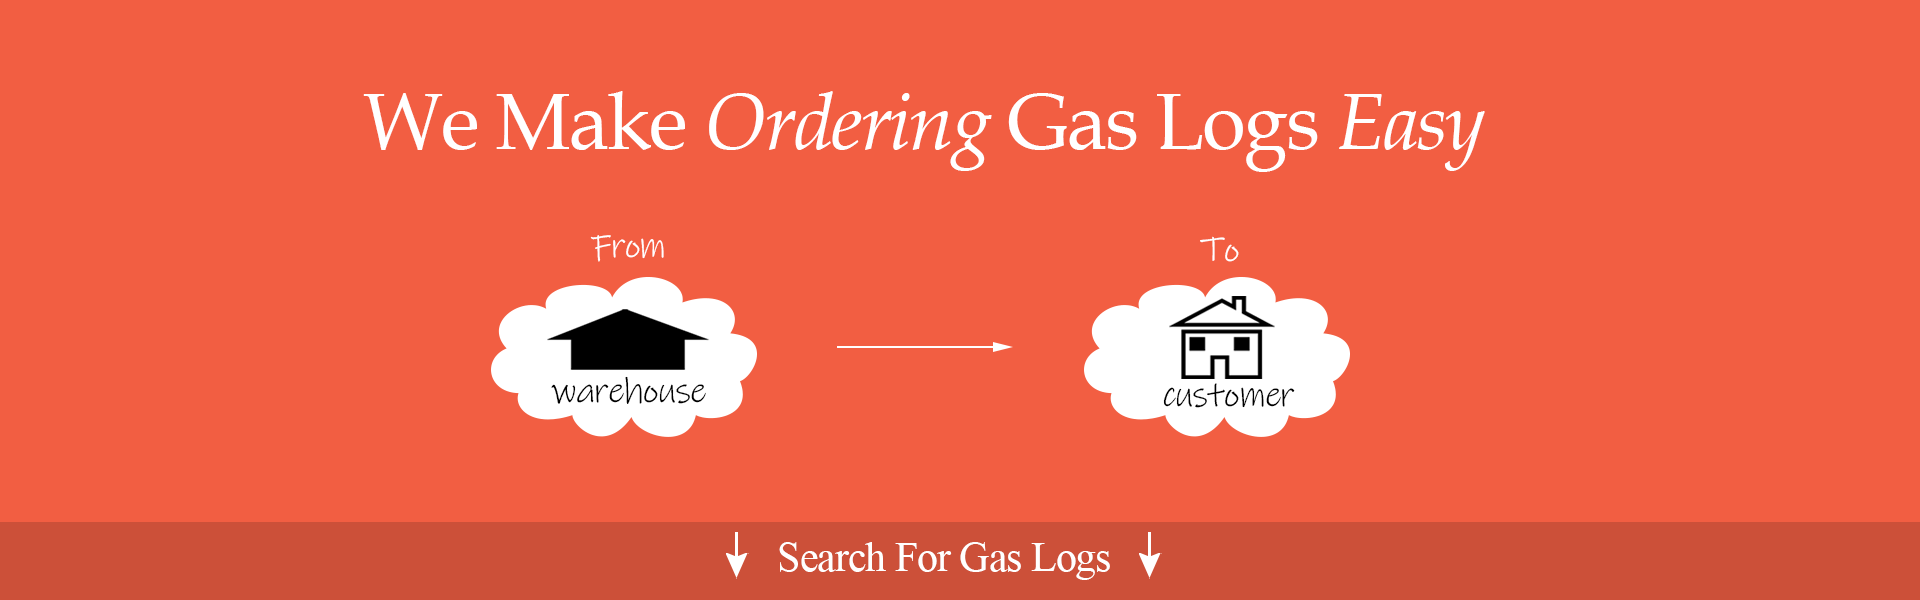 Ordering Gas Logs Made Easy